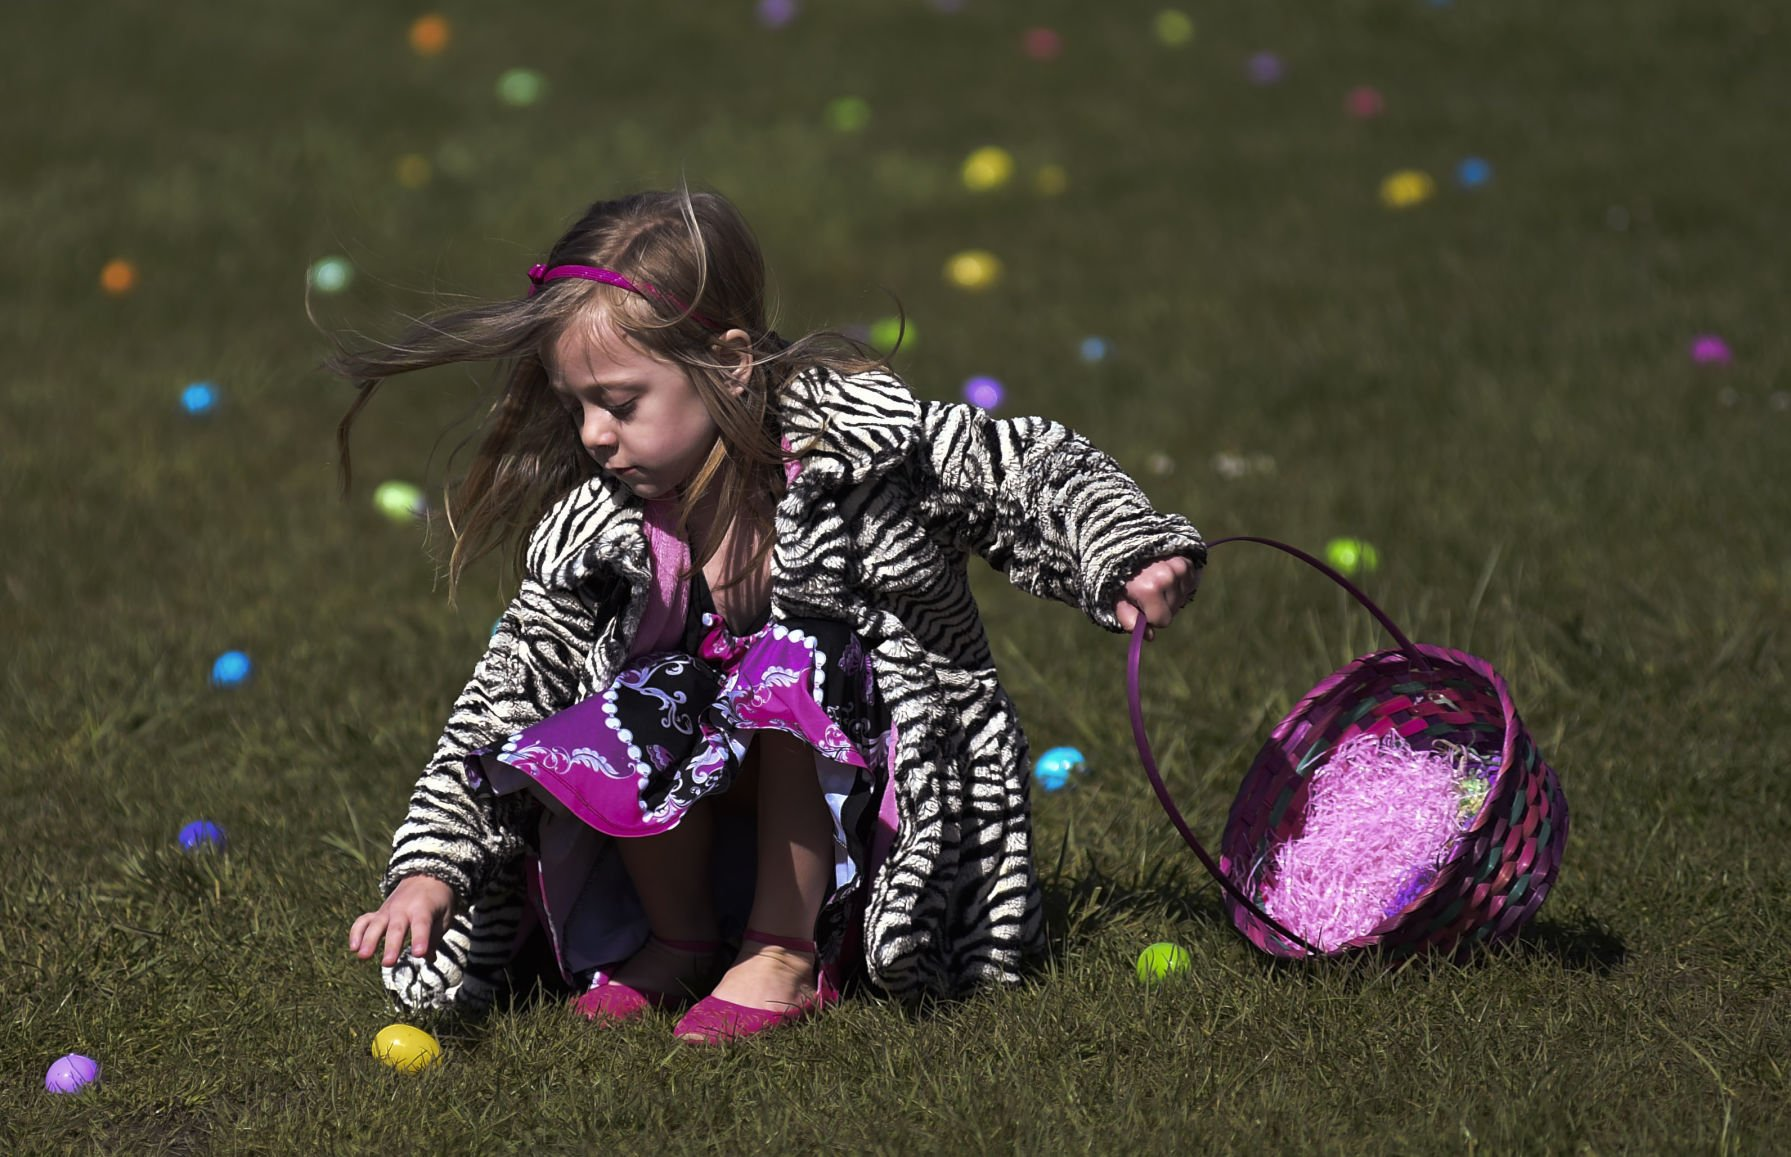 Church marks Easter with helicopter egg drop